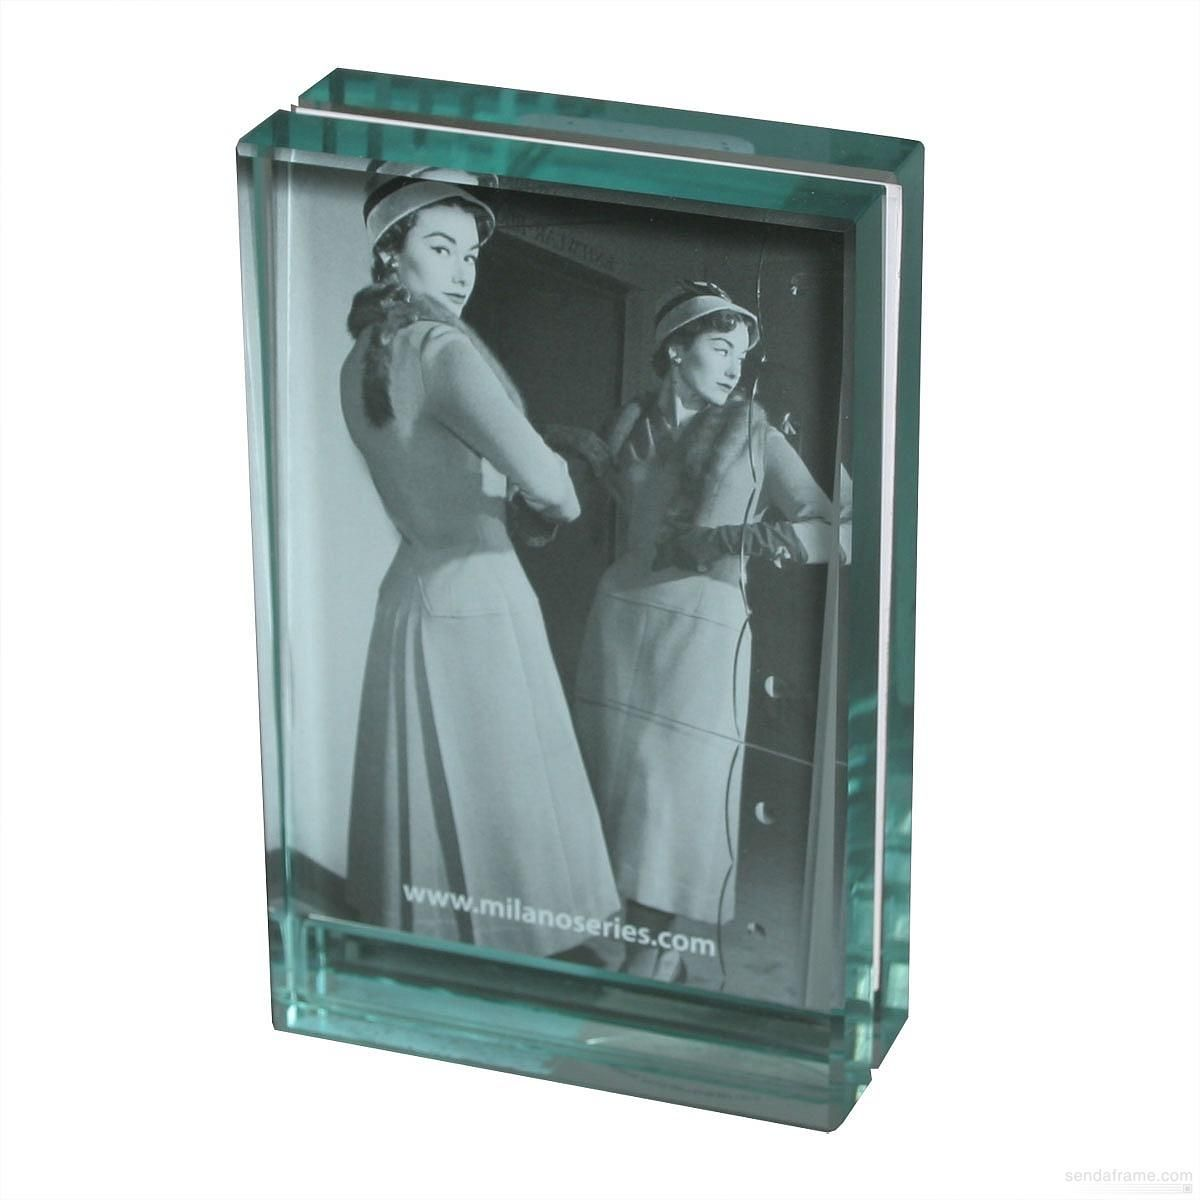 Clarity glass block frame by milano series comes in sizes up to 5 clarity glass block frame by milano series comes in sizes up to 5 x 7 jeuxipadfo Gallery